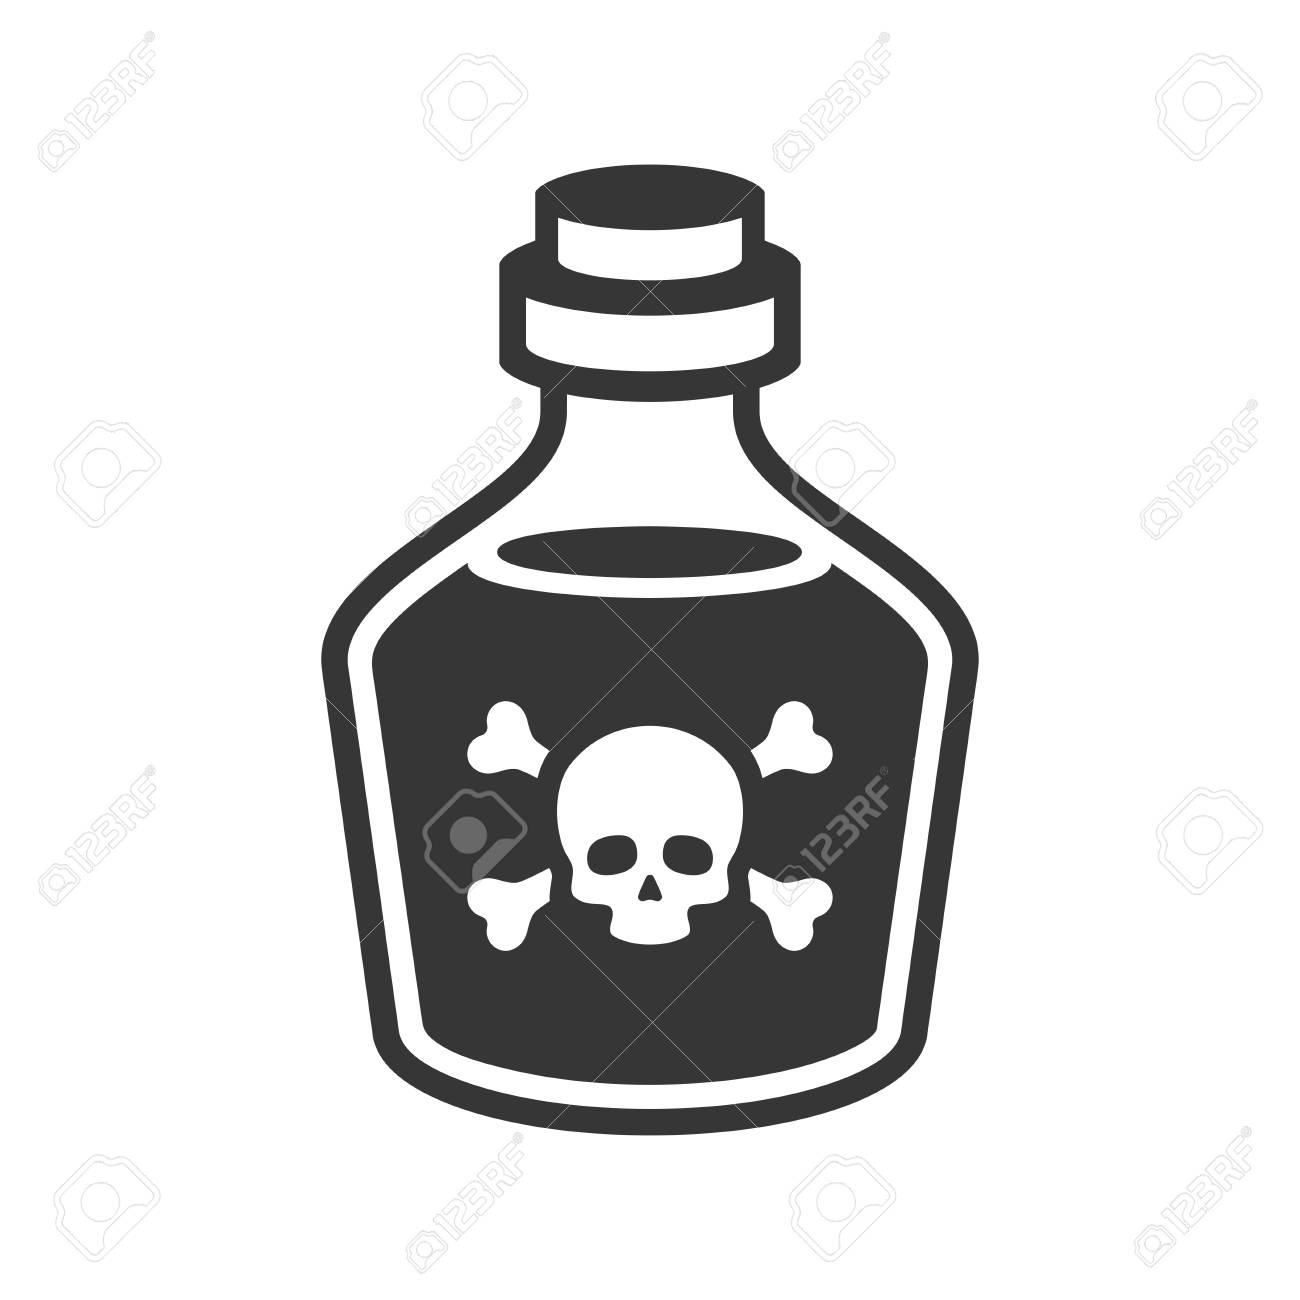 Glass Poison Bottle Icon on White Background. Vector - 95464028